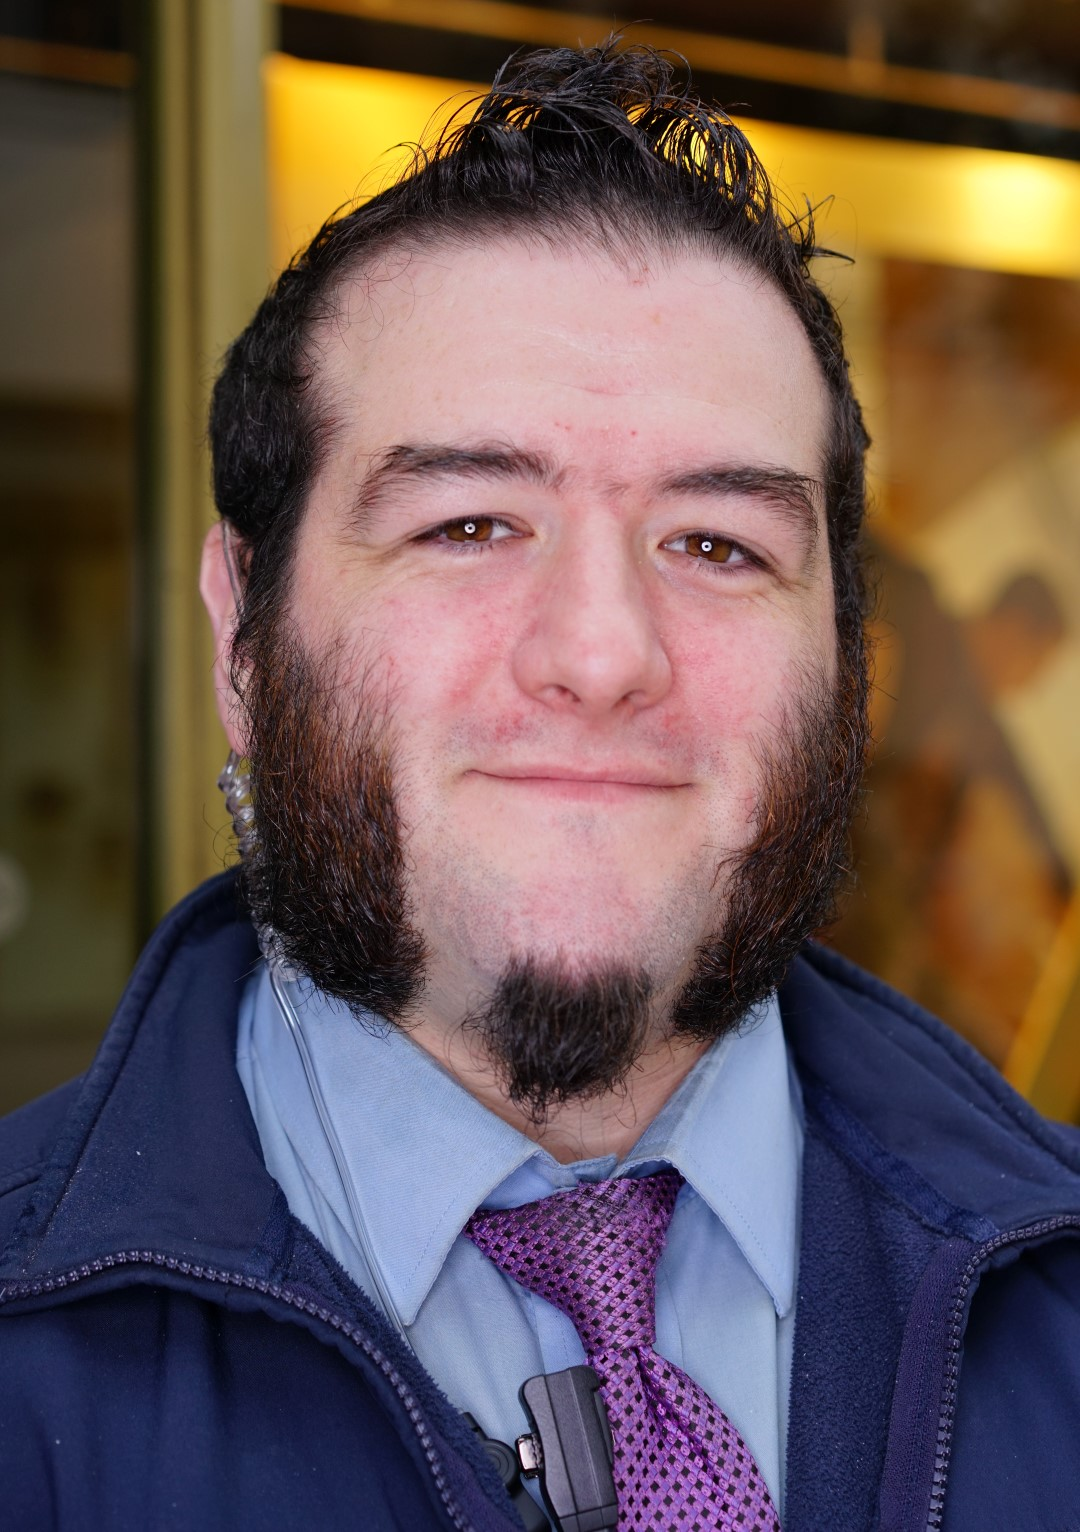 A Security Guard with cool mutton chops, at a dance event in Belfast